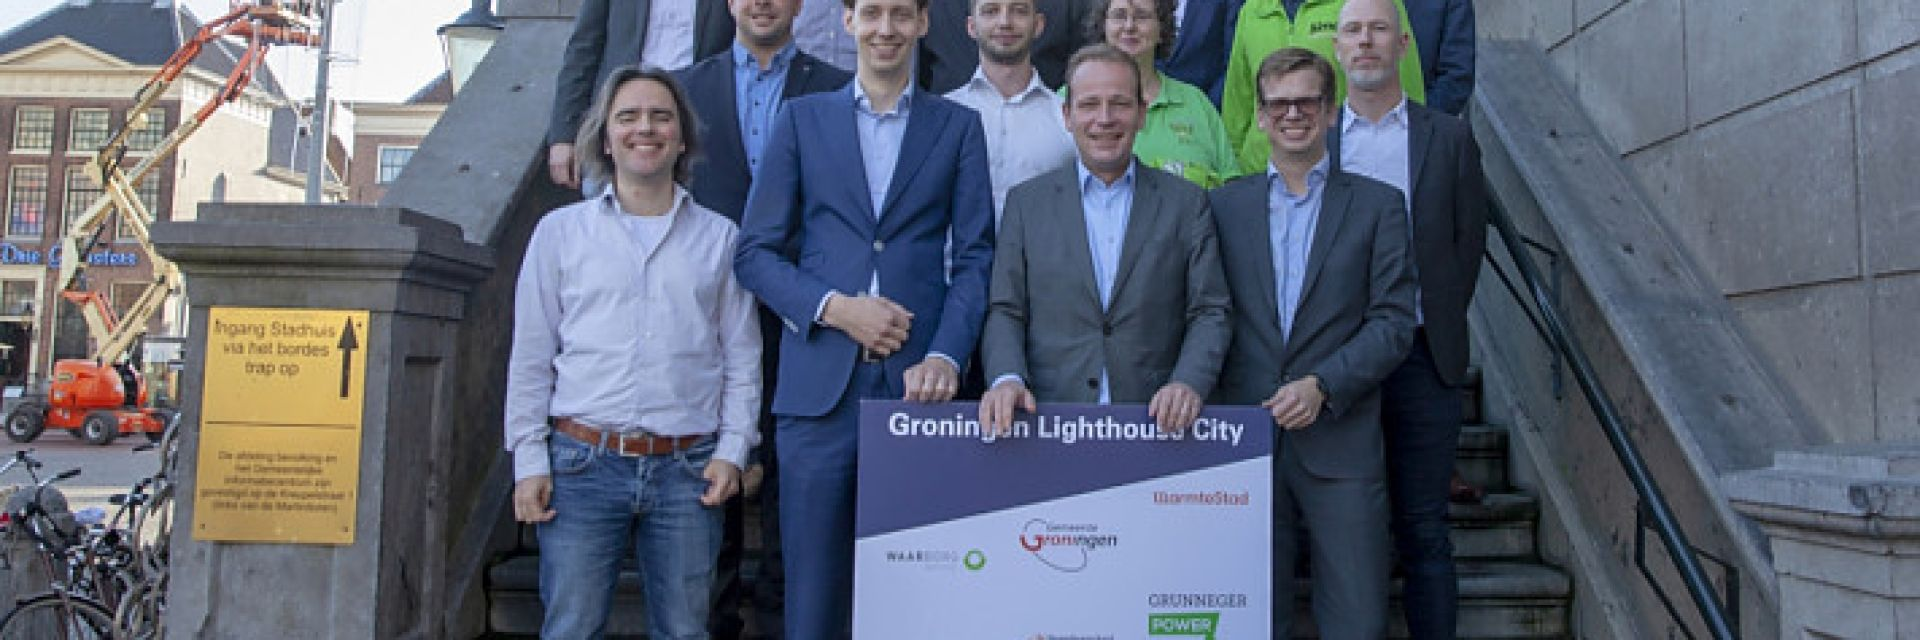 Europe appoints Groningen as 'Lighthouse City'